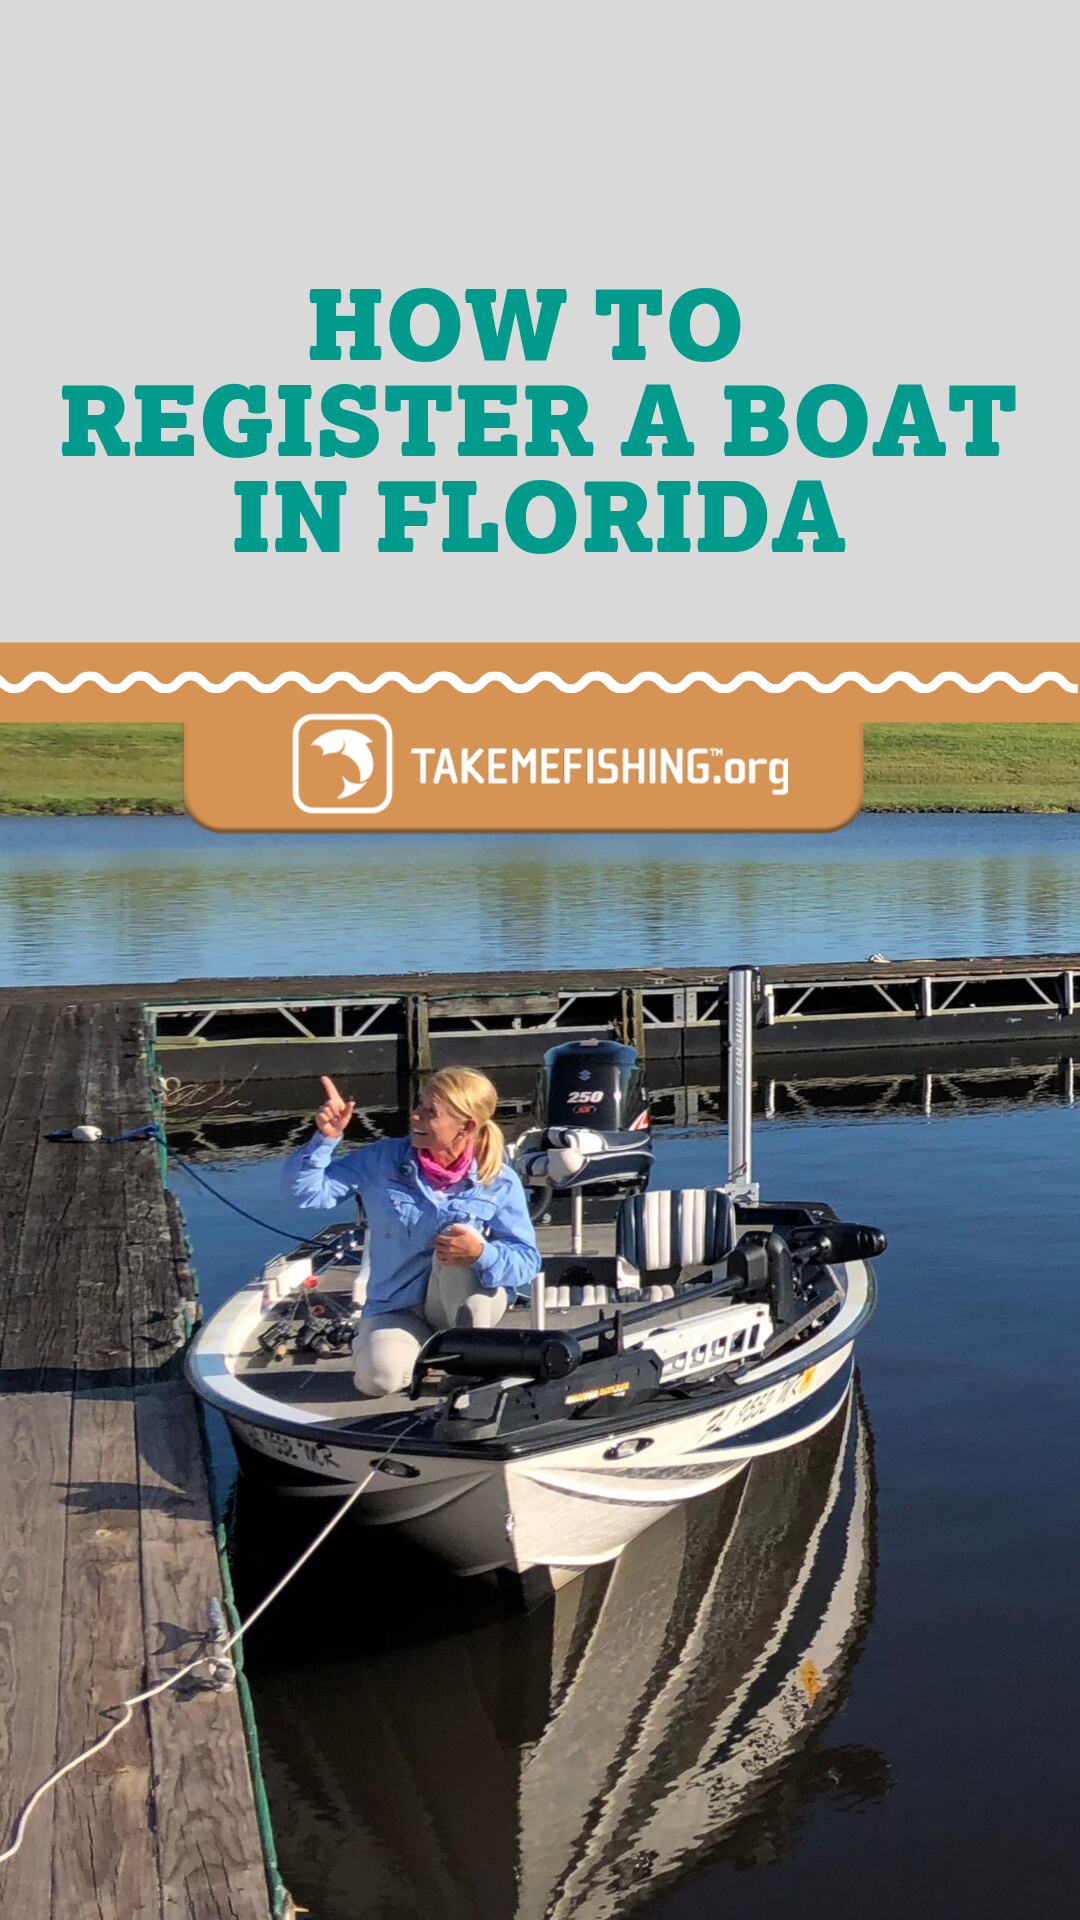 RegisterABoat in Florida. Once you purchase a boat, have